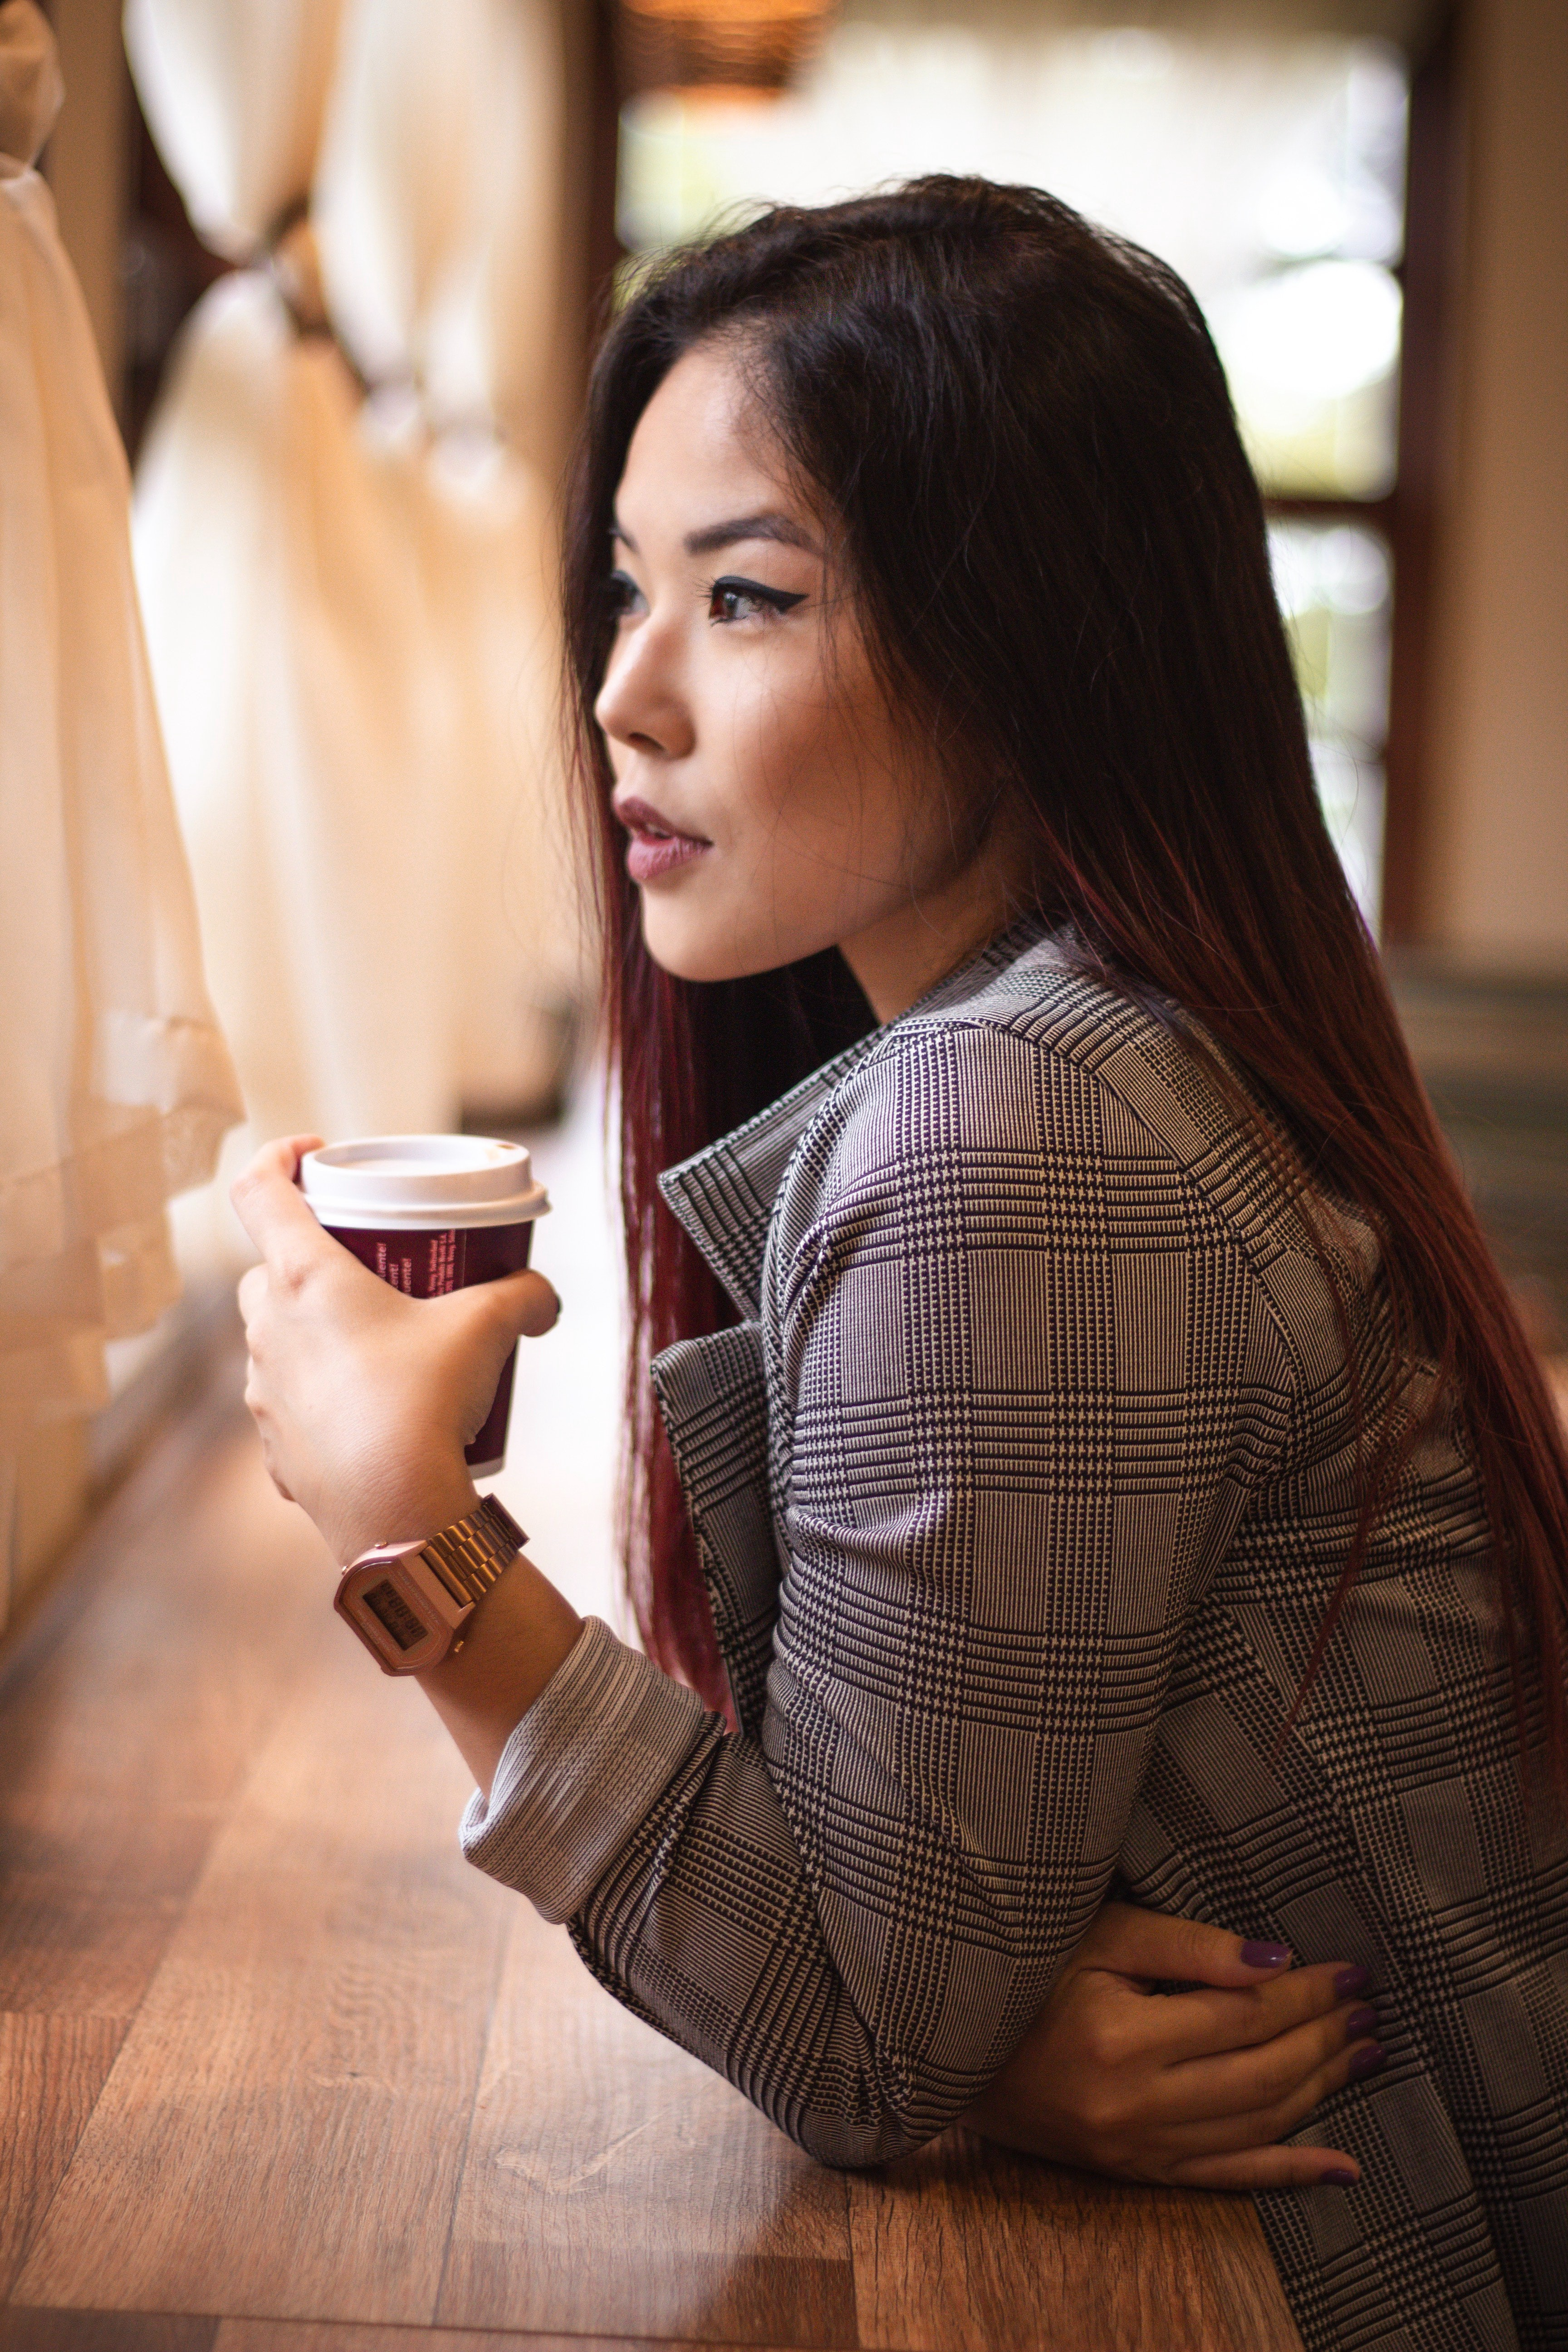 Woman looks pensively through window at cafe